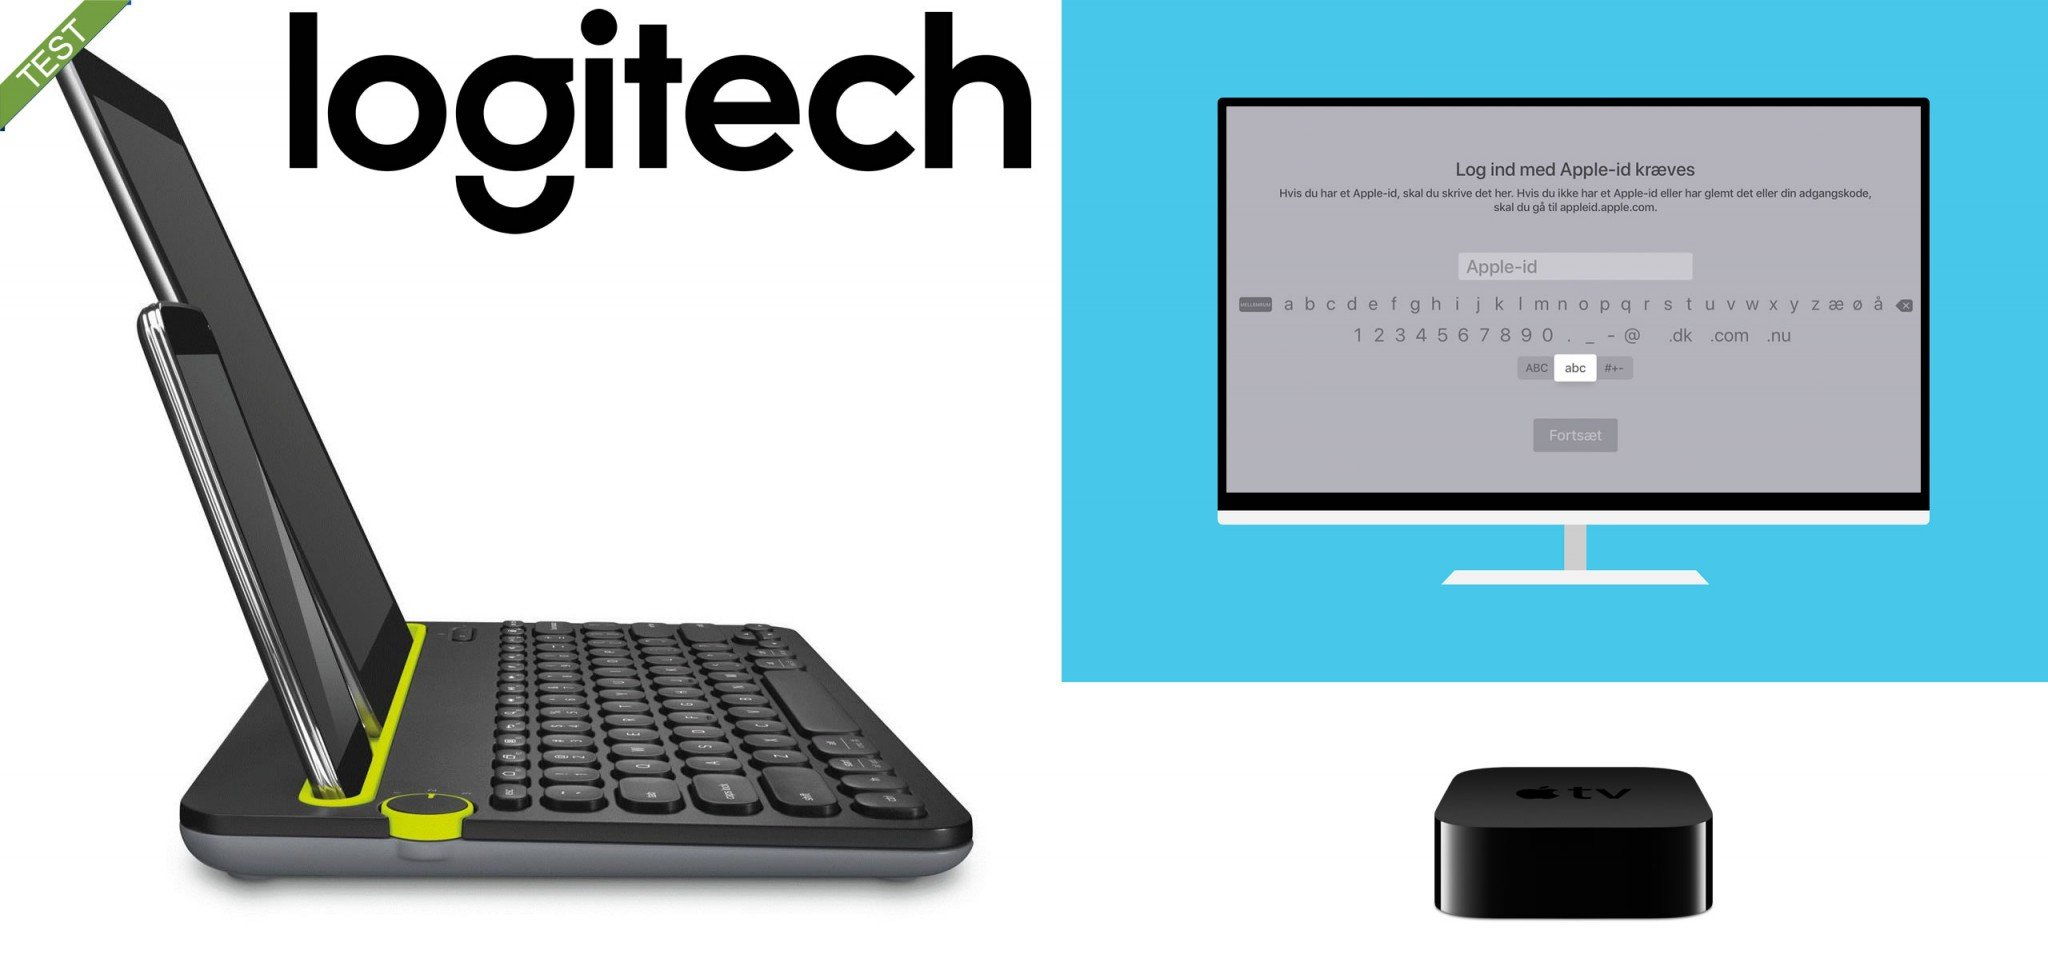 Logitech K480 keyboard test